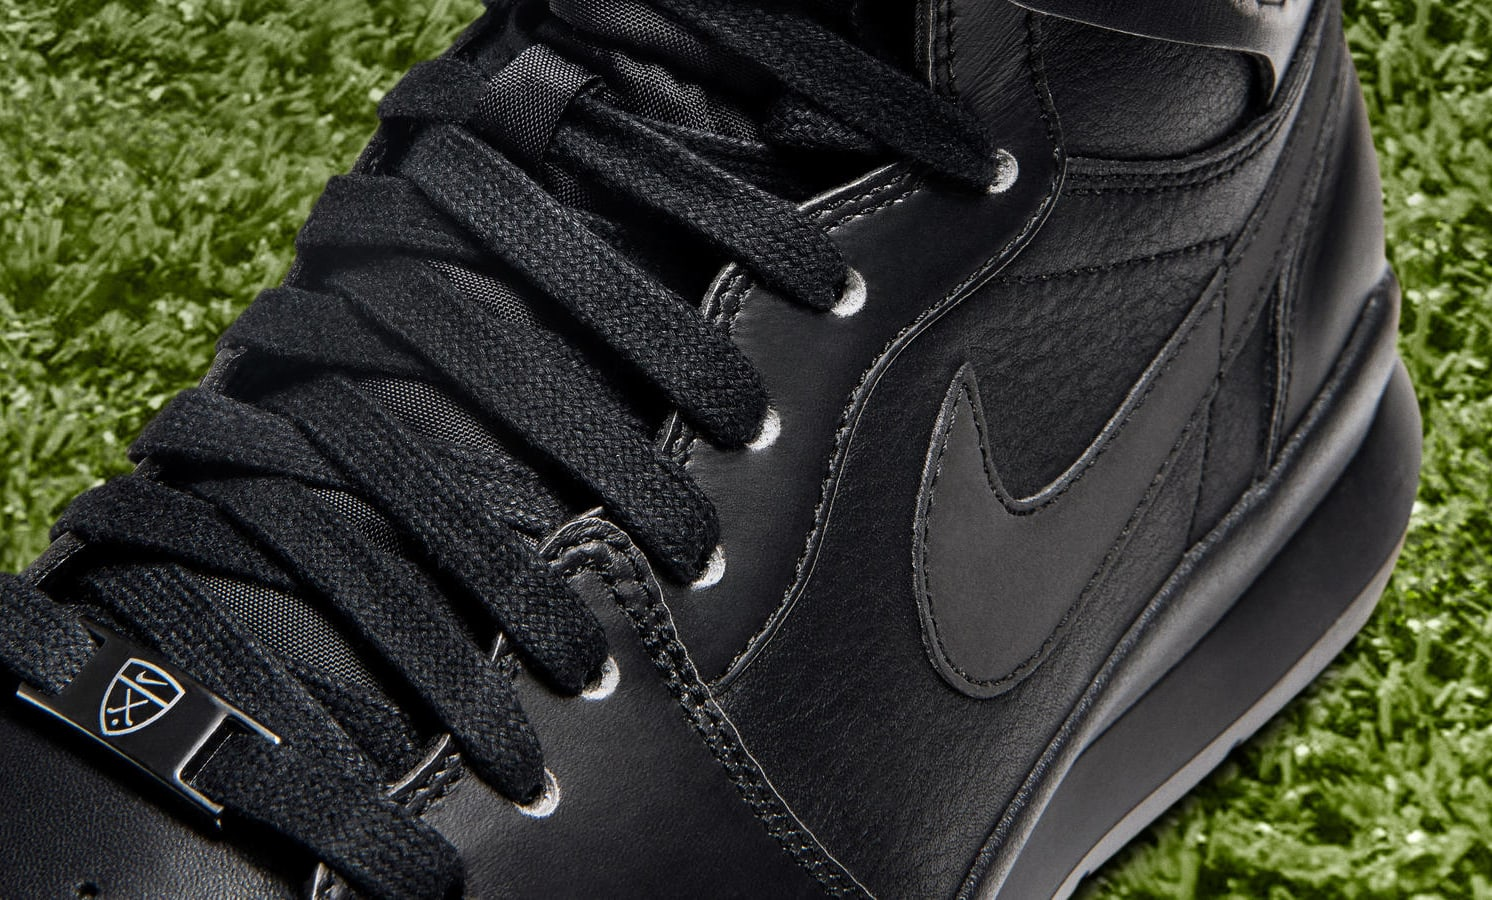 Air Jordan 1 Golf Black Detail